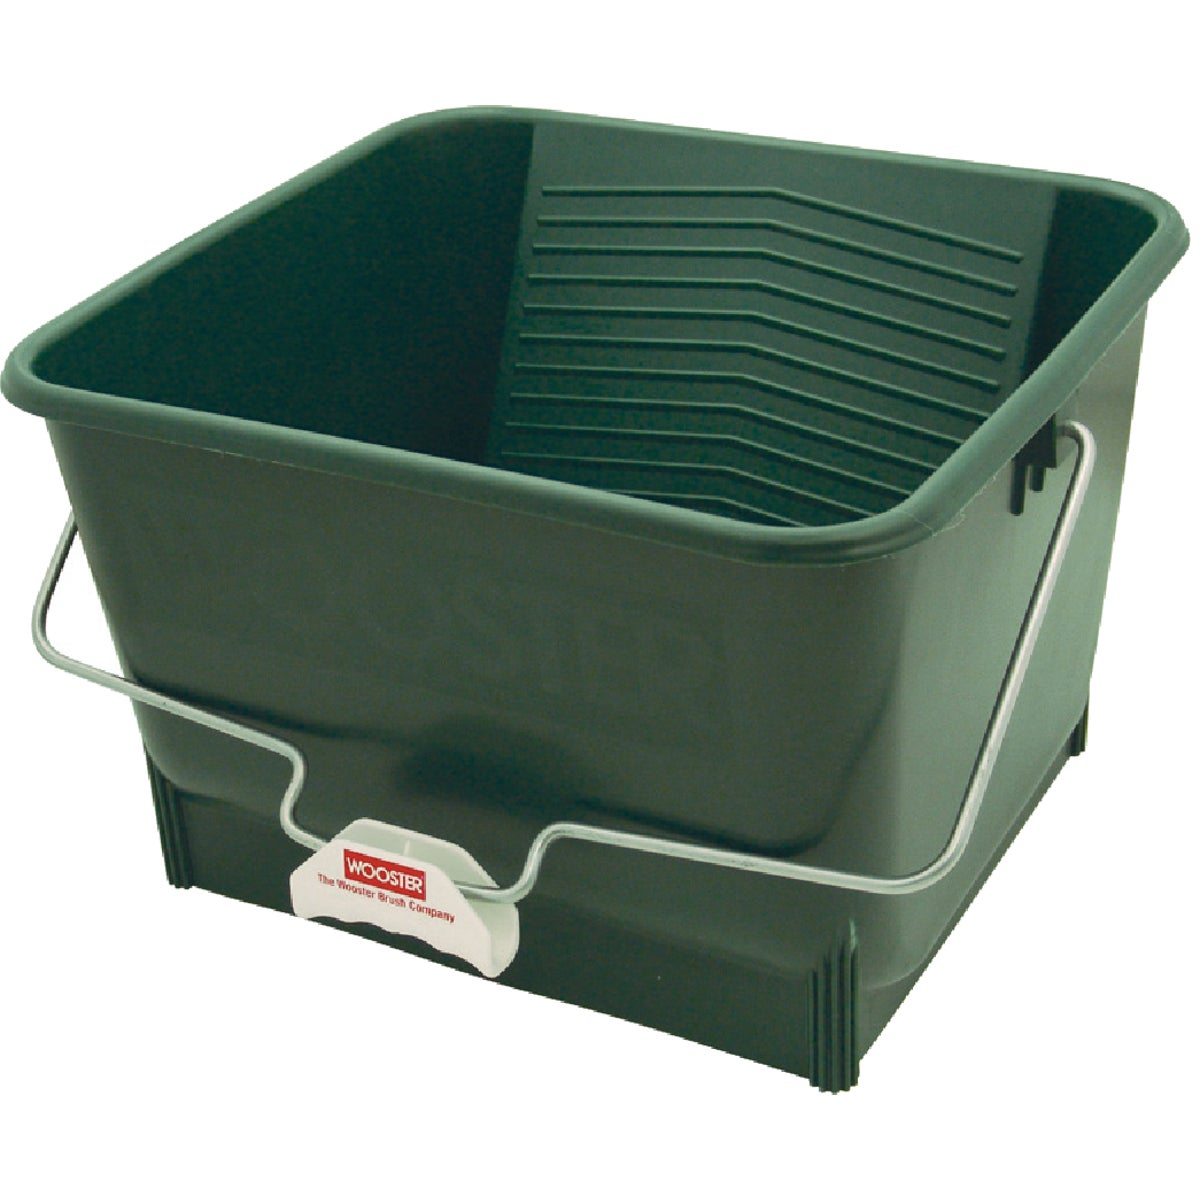 4 GALLON BUCKET - 8616 by Wooster Brush Co